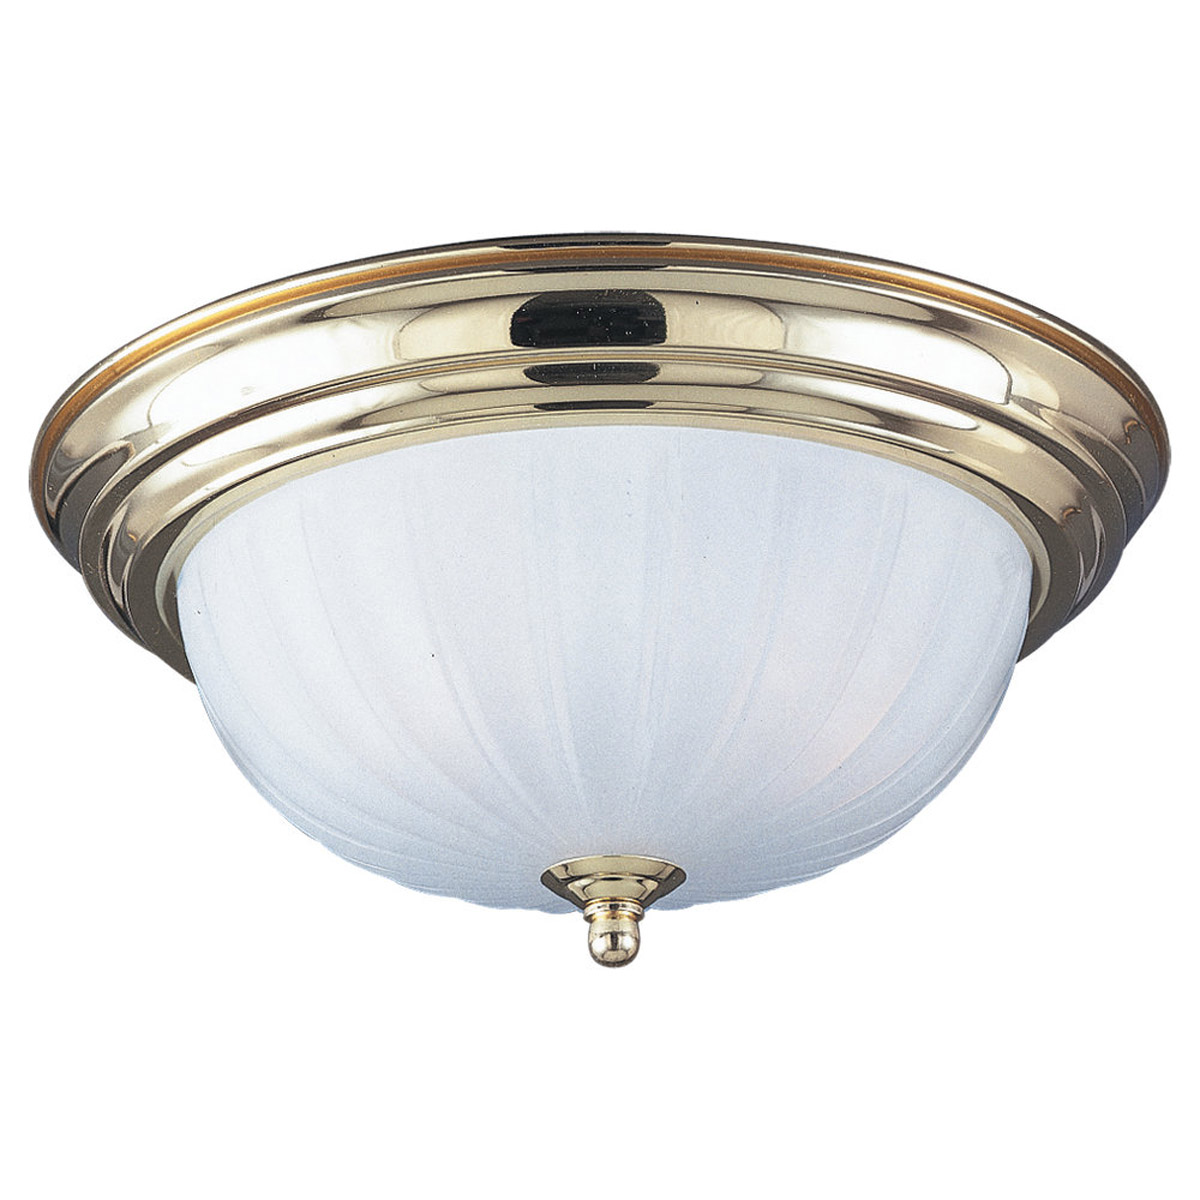 Sea Gull Lighting Linwood 2 Light Flush Mount in Polished Brass 7505-02 photo